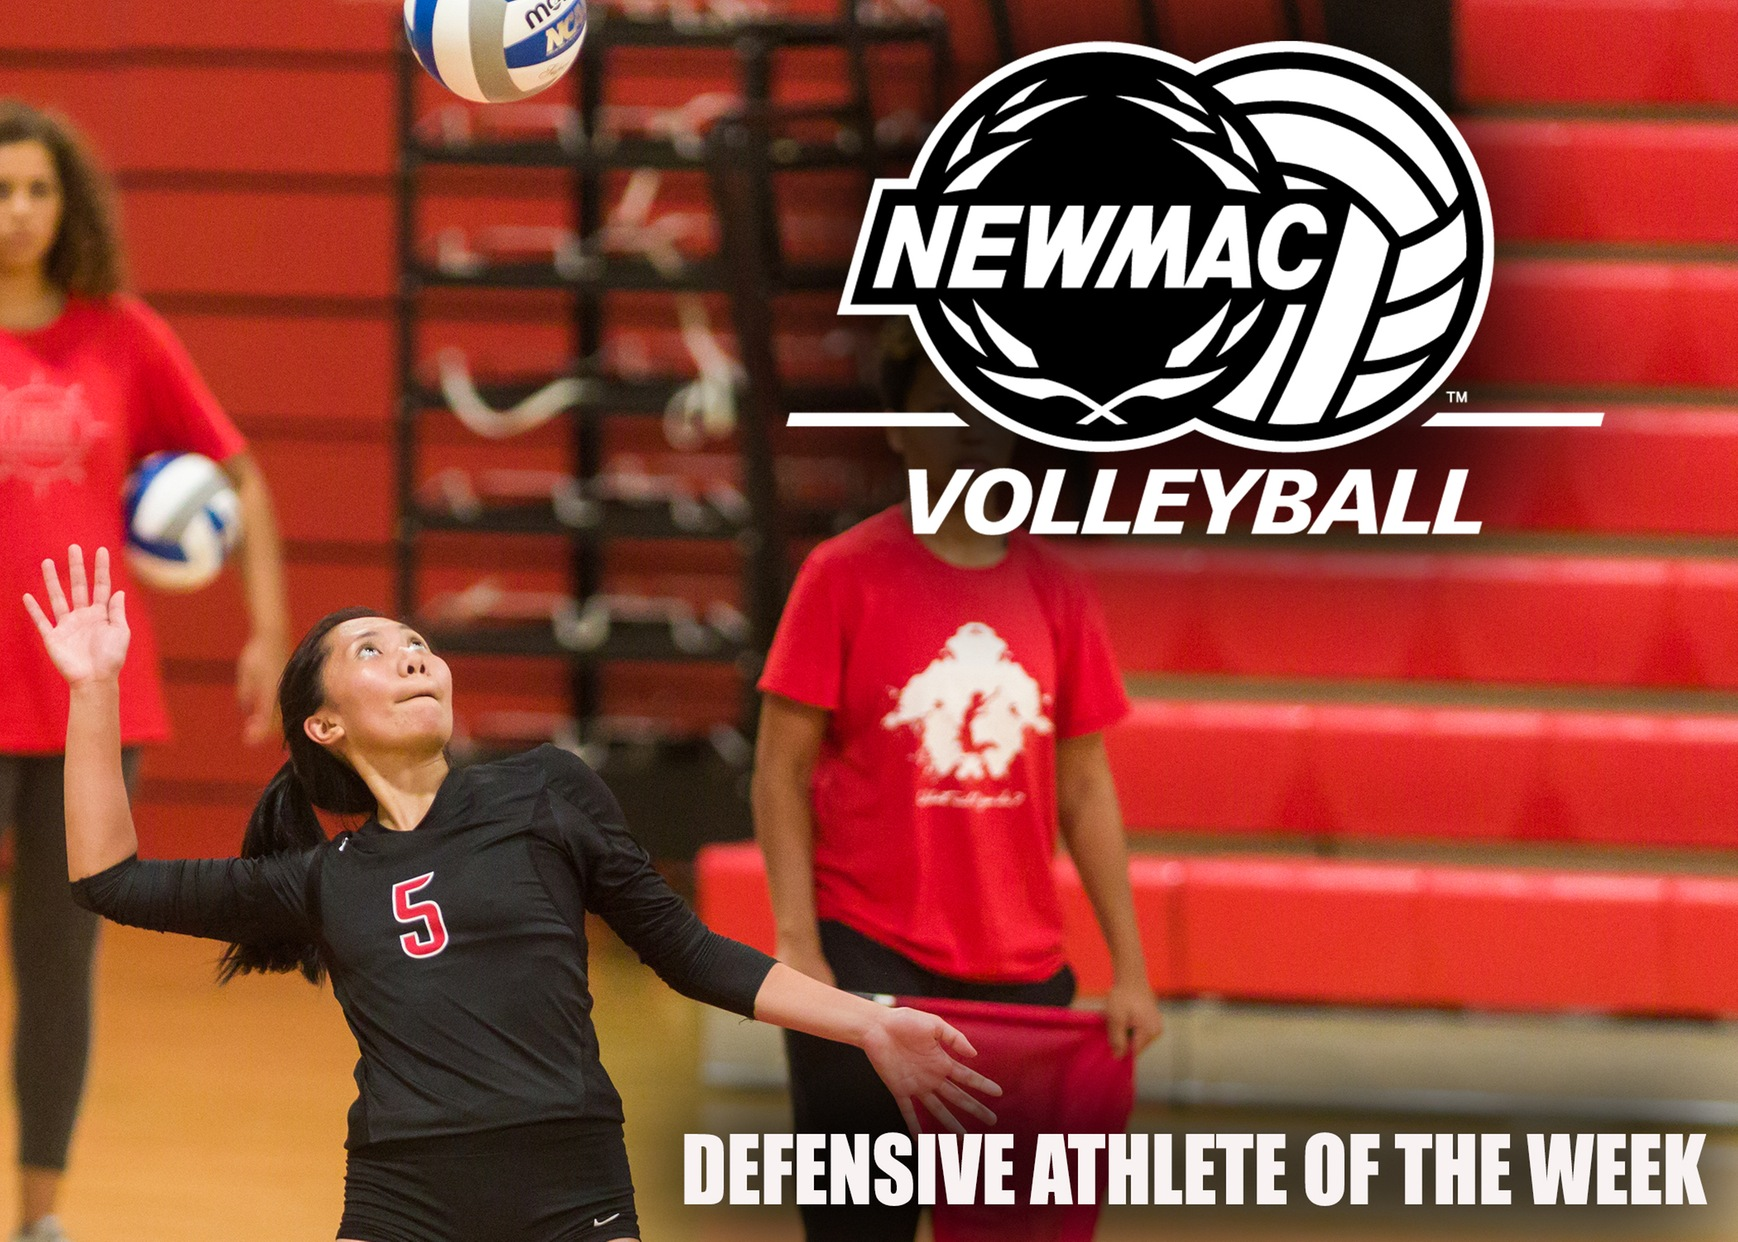 Quiban Named NEWMAC Defensive Athlete of the Week